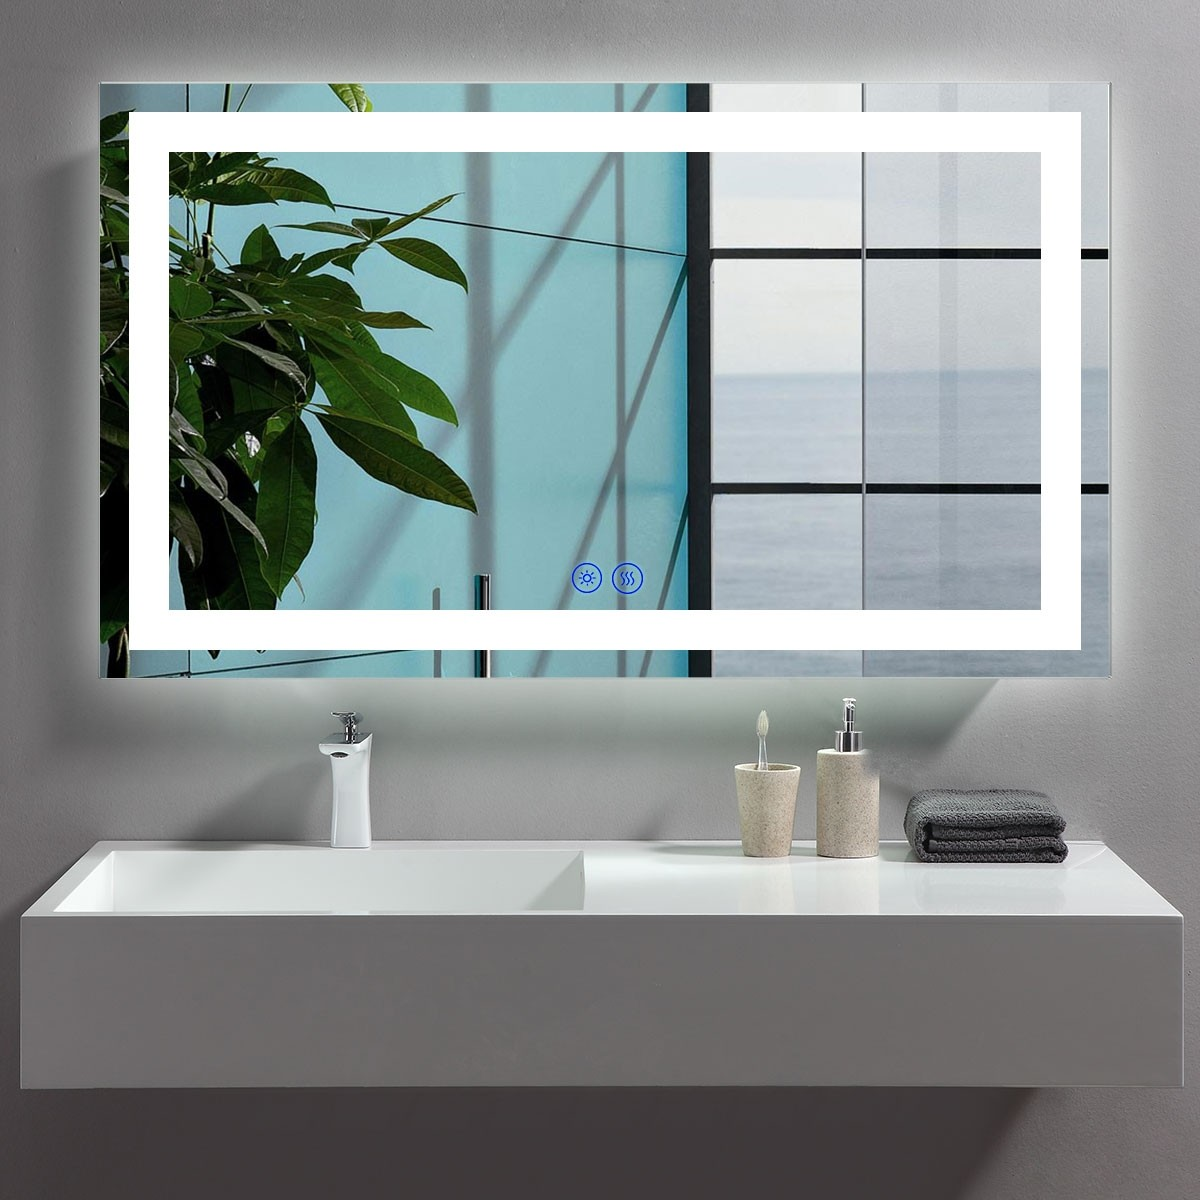 DECORAPORT 48 x 28 Inch LED Bathroom Mirror/Dress Mirror with Touch Button, Anti Fog, Dimmable, Vertical & Horizontal Mount (CT08-4828)